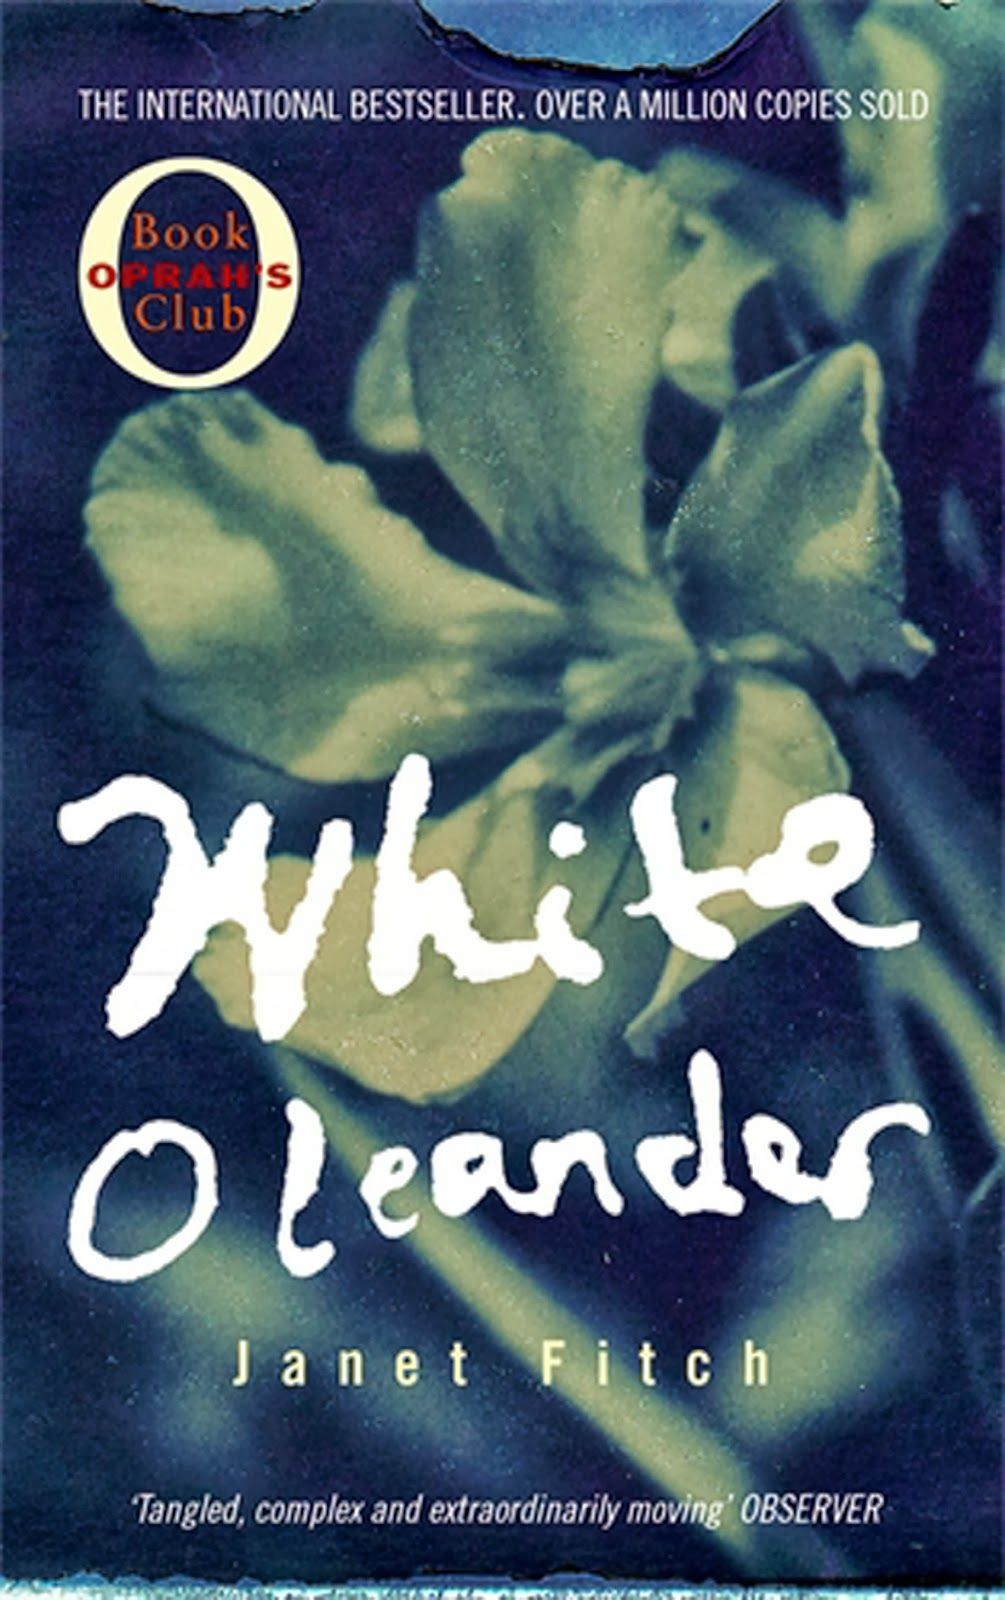 Fitch white oleander awordfromjojo